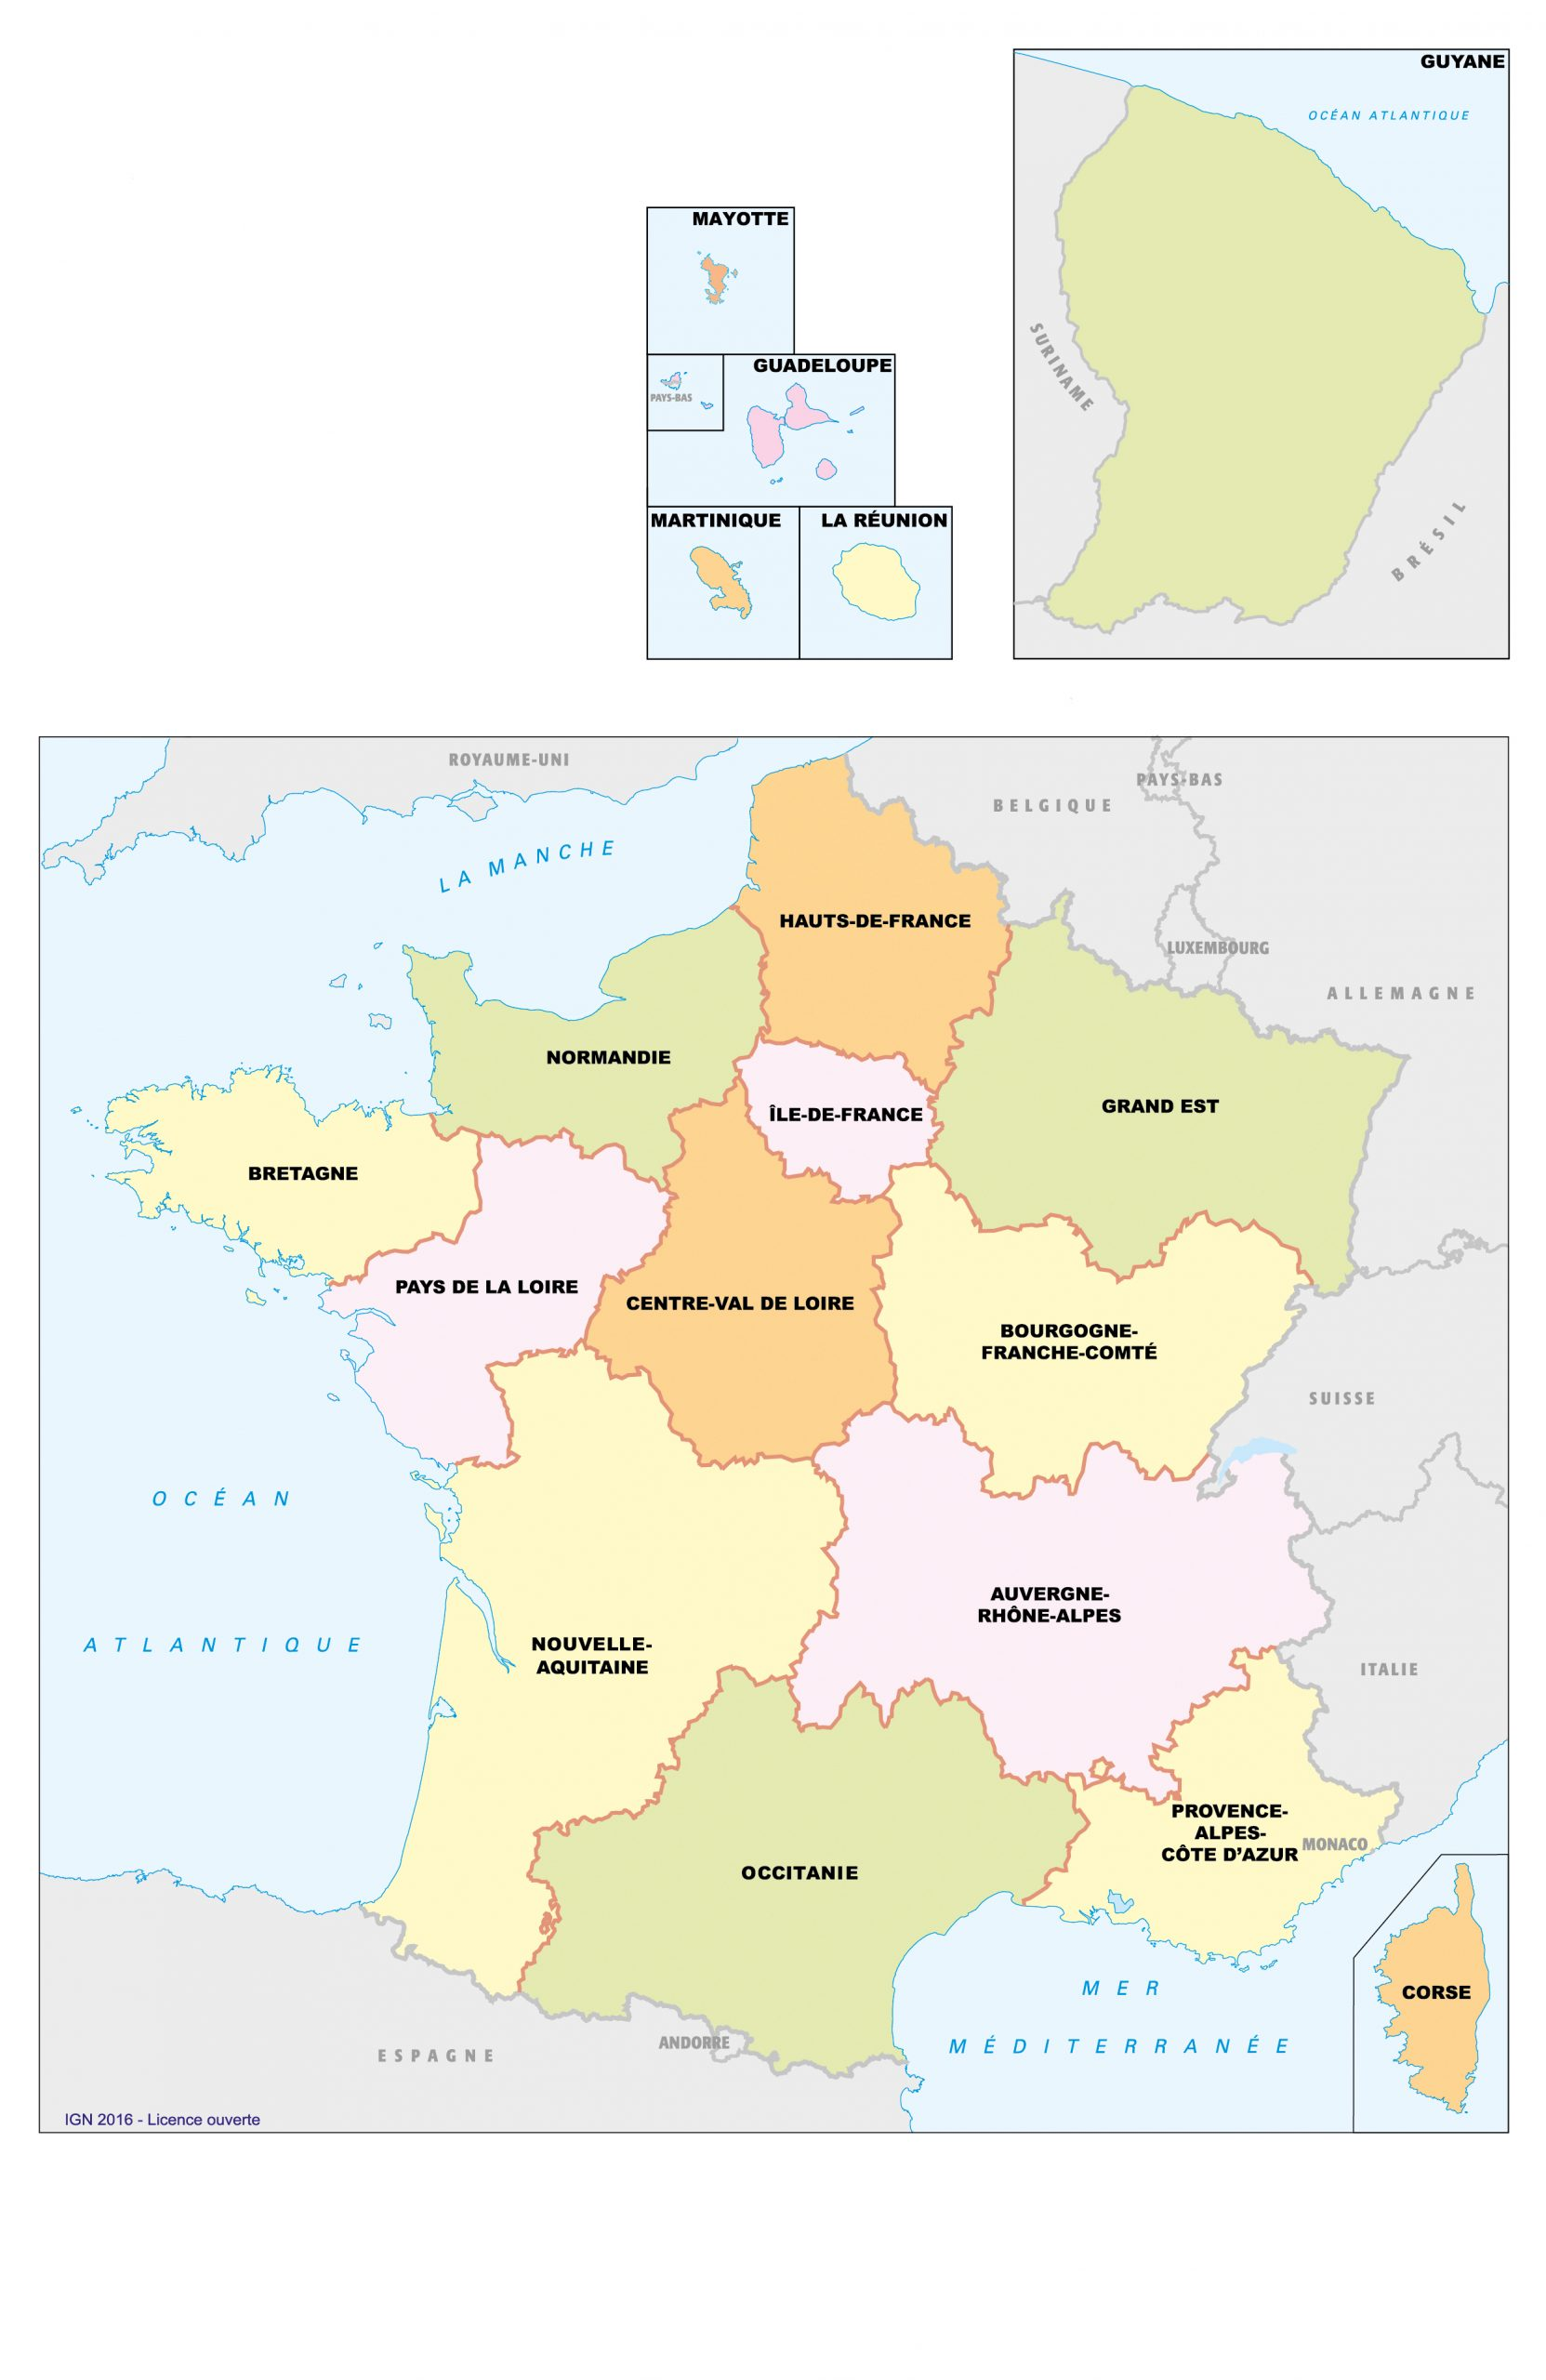 Fonds De Cartes | Éducation à Carte De France Ce2